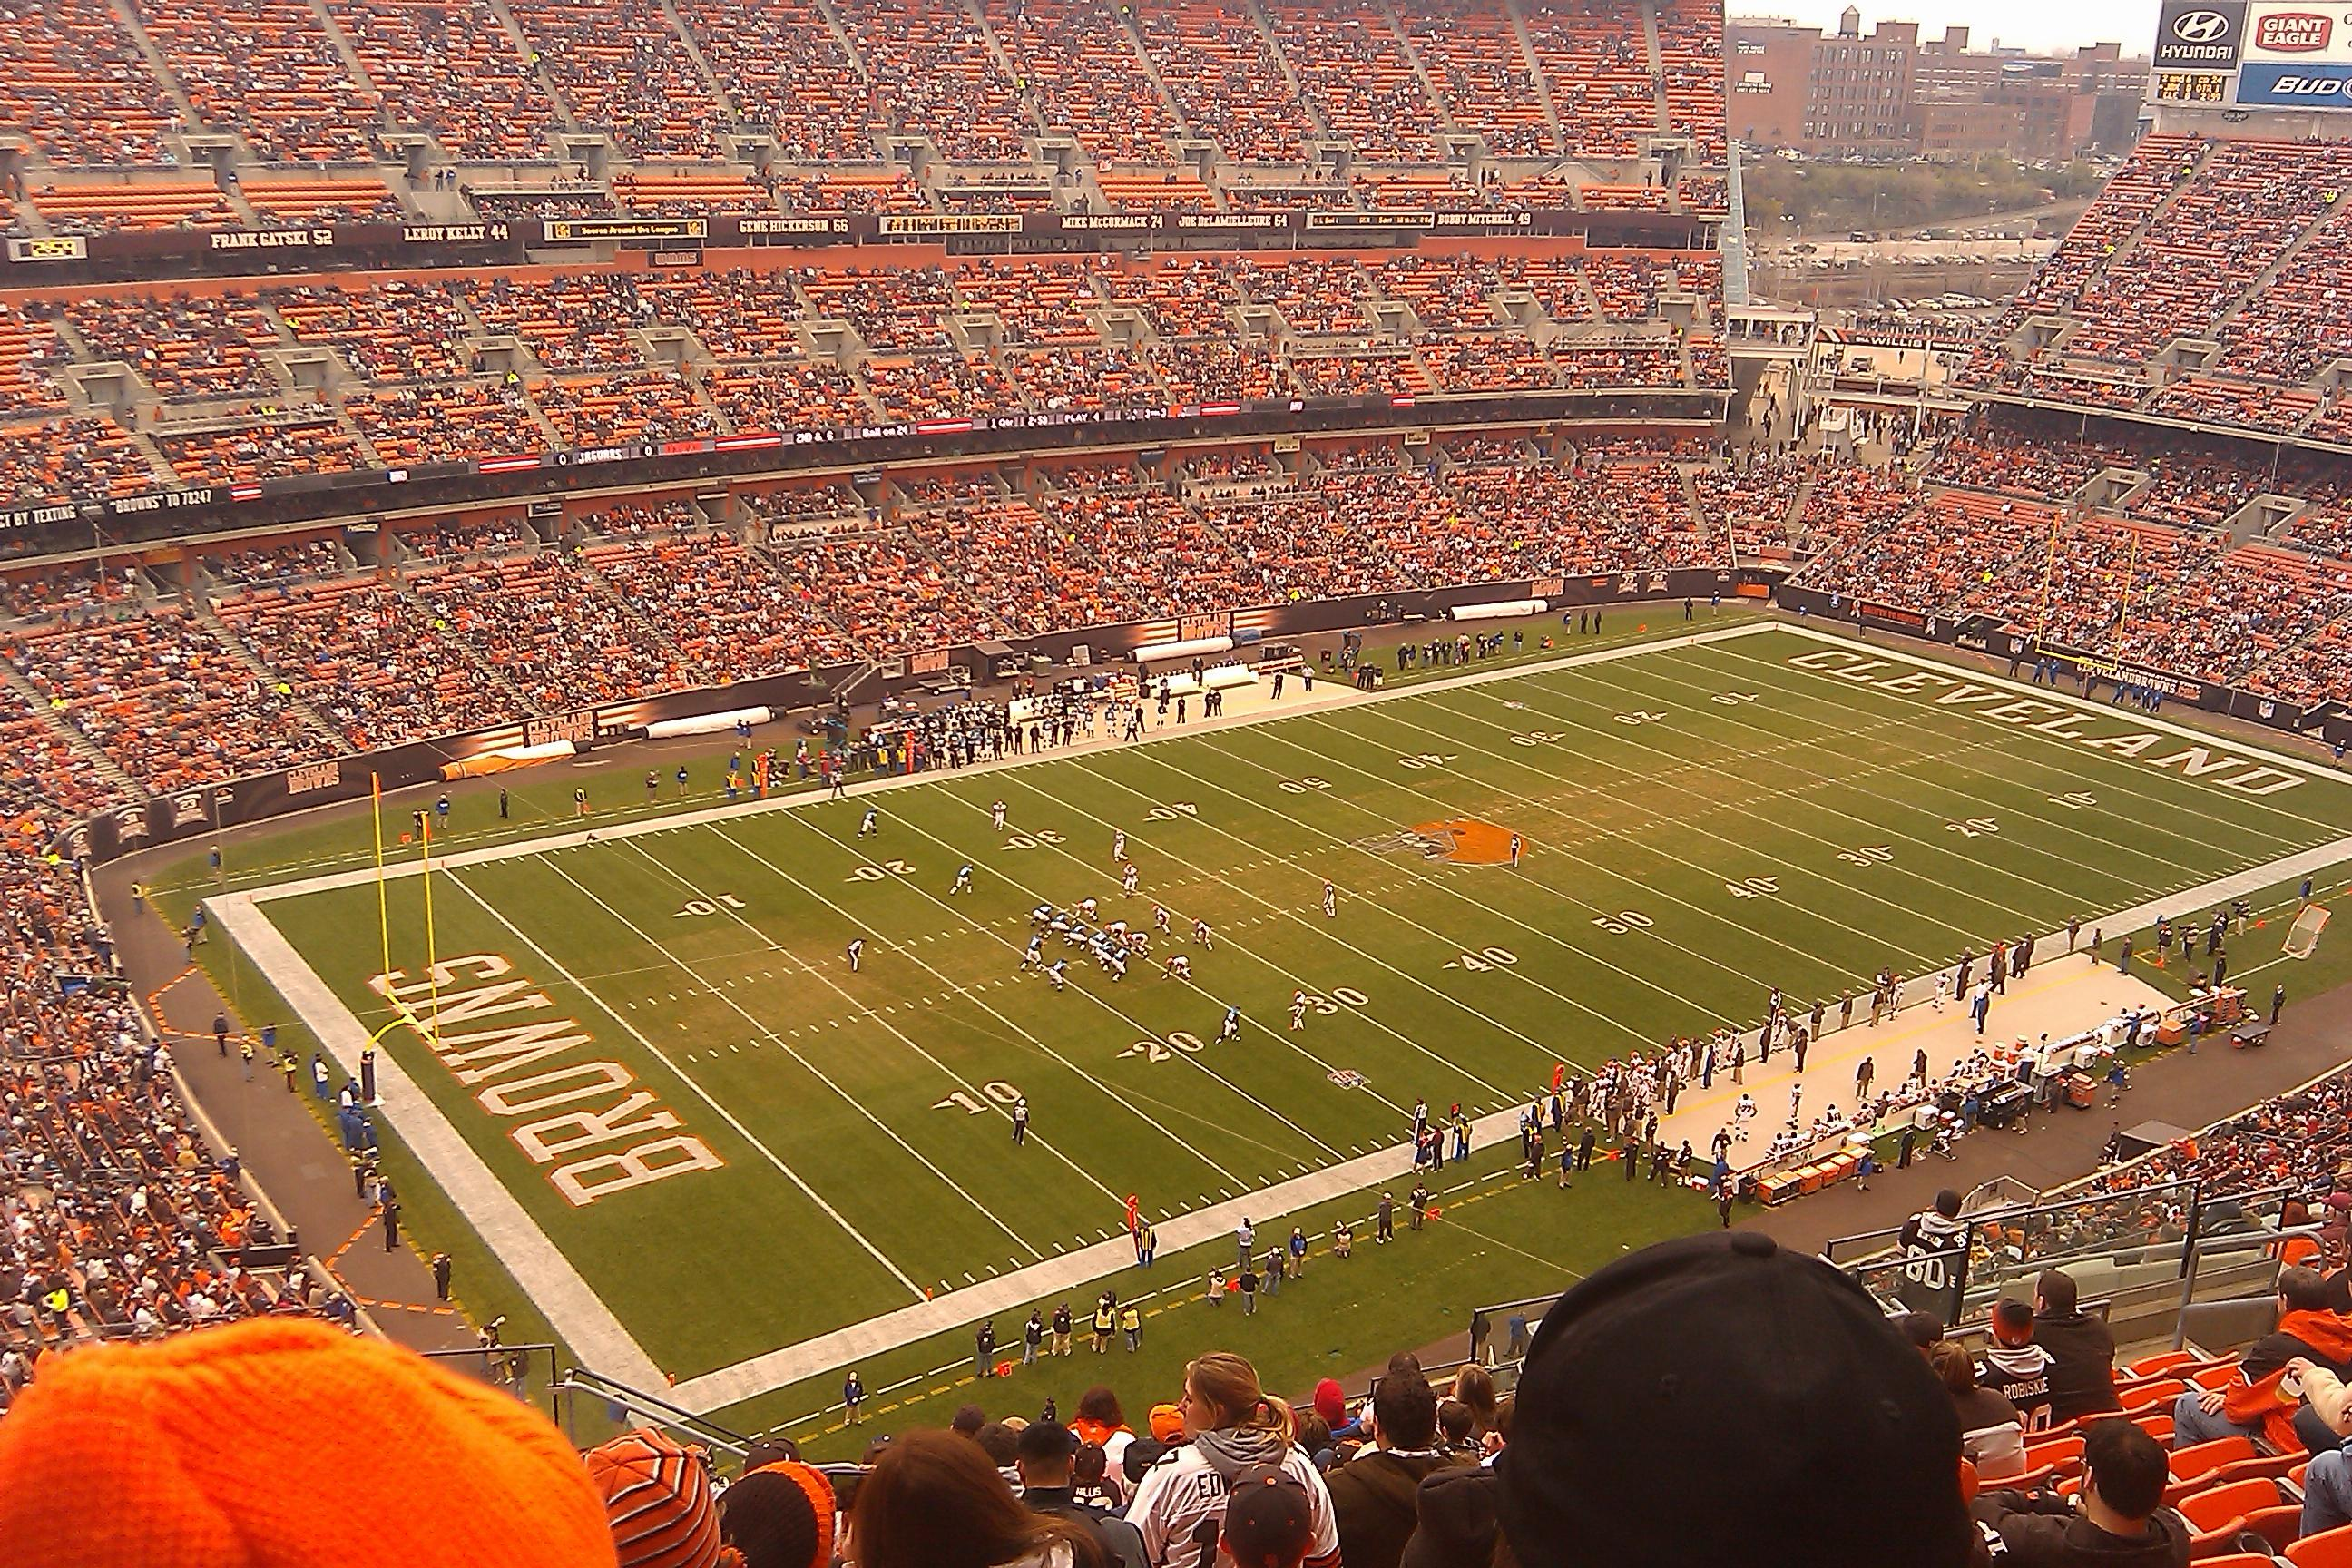 Firstenergy stadium section 528 row 22 seat 3 cleveland browns vs jacksonville jaguars